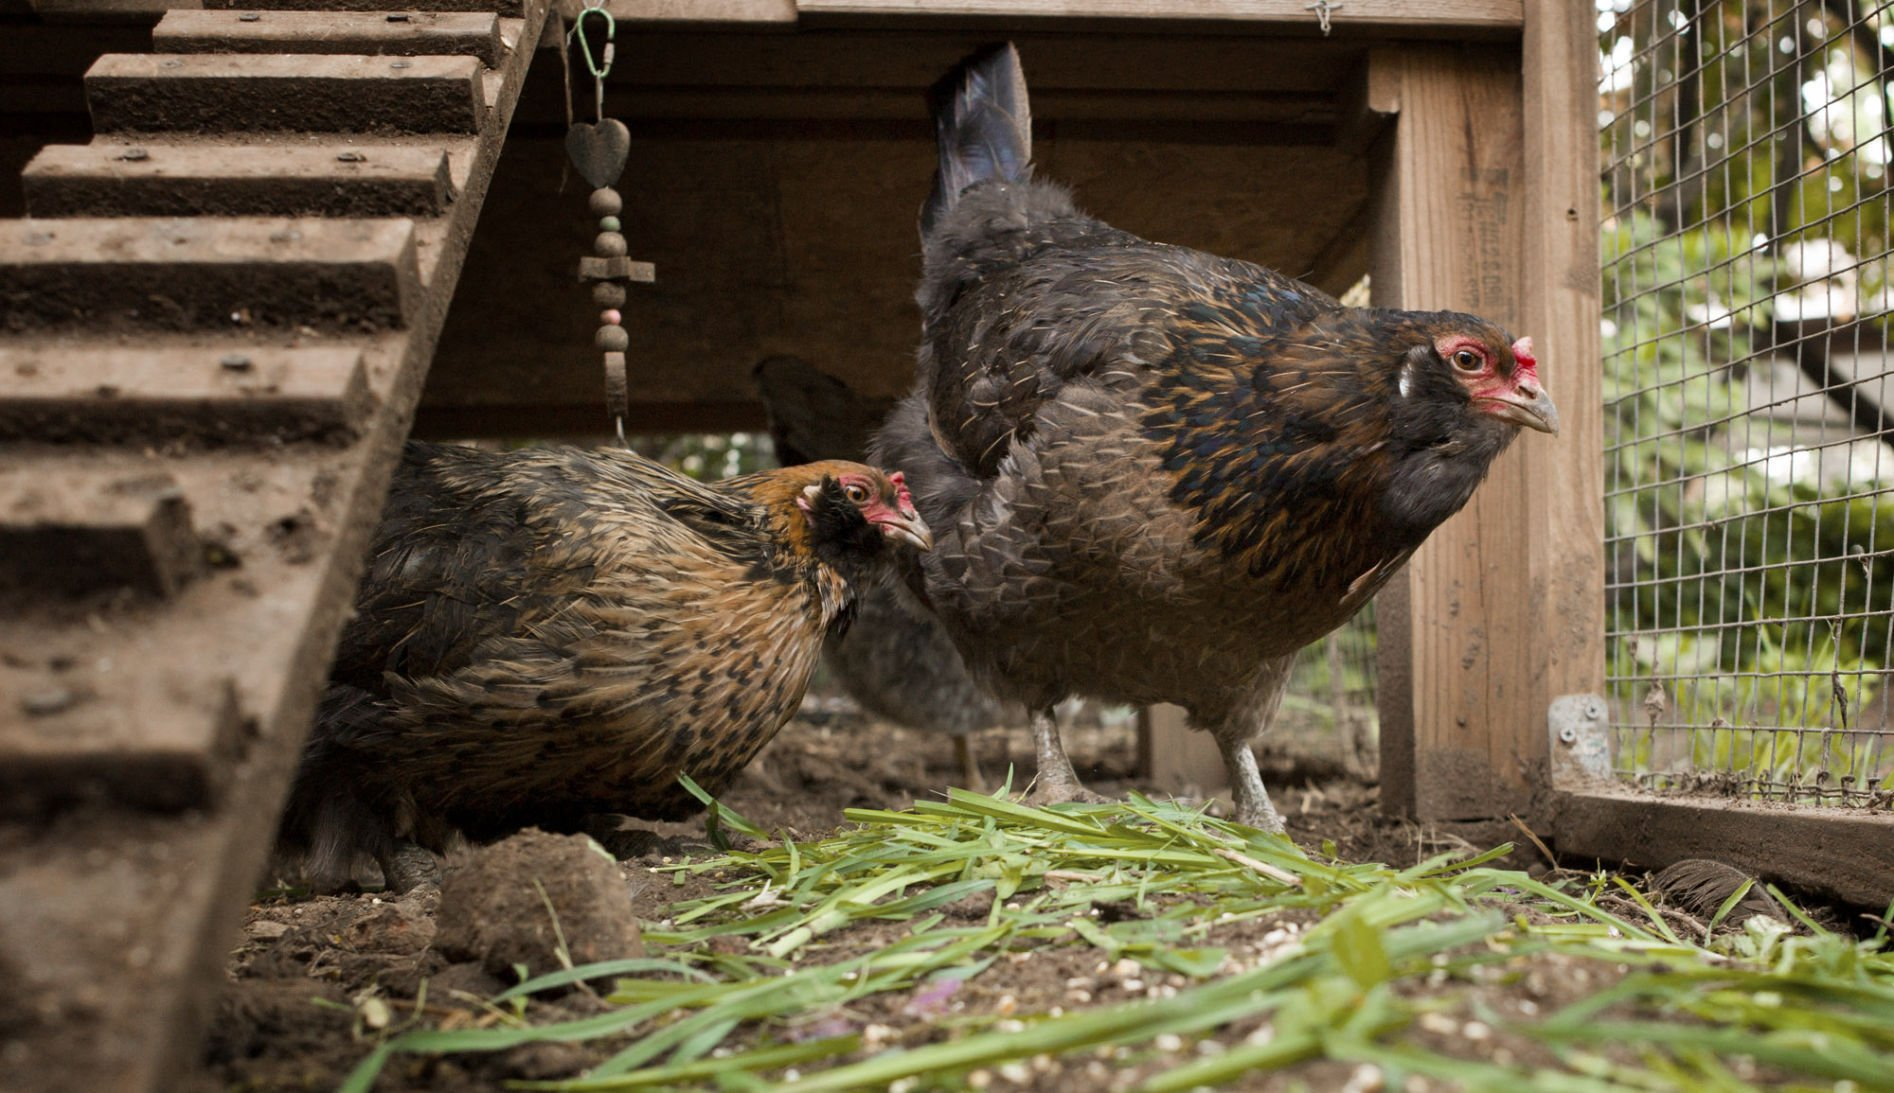 North Carolina salmonella outbreak linked to backyard chickens